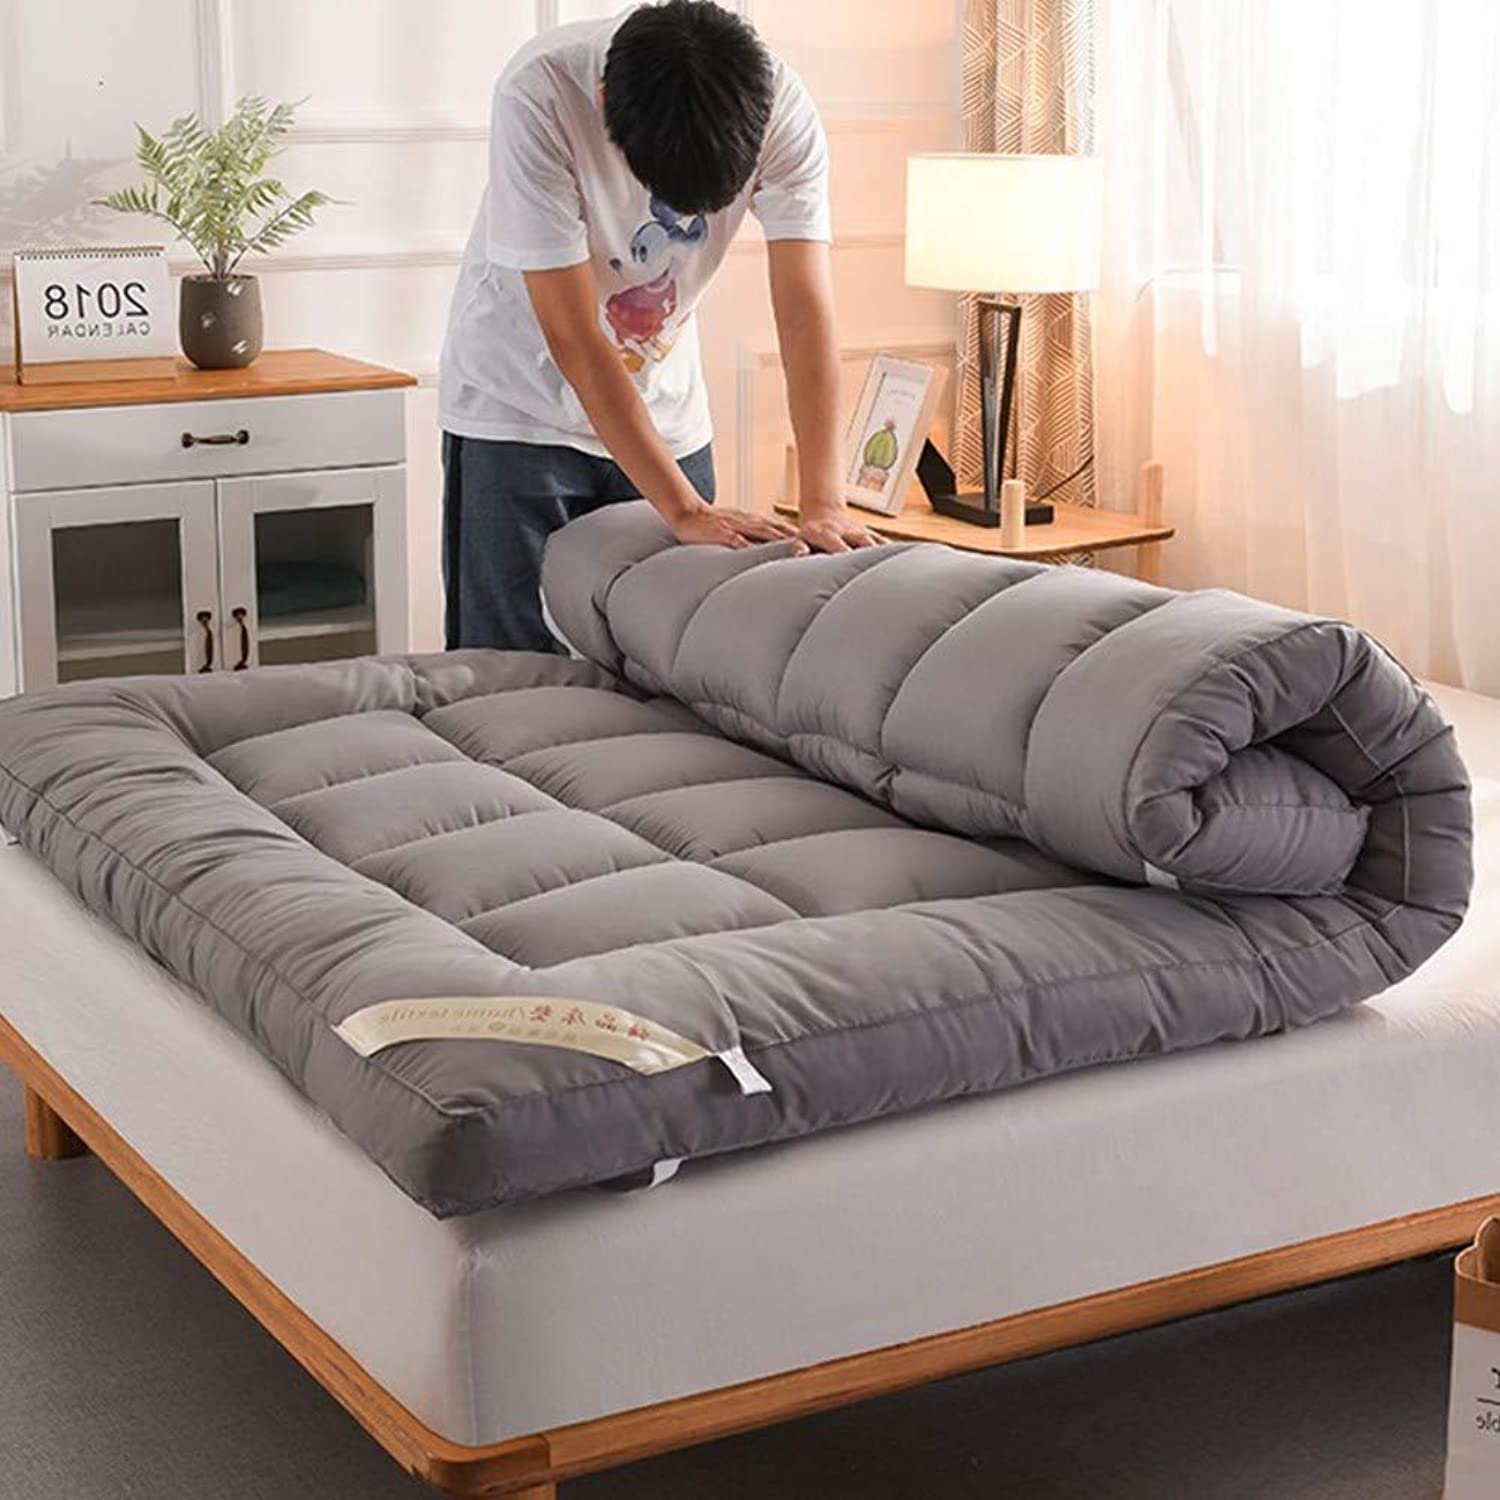 Ultra-Soft Mattress, Fluffy Collapsible Futon Tatami Comfortable Hypoallergenic for Student Bedroom-a 90x200x10cm(35x79x4inch)